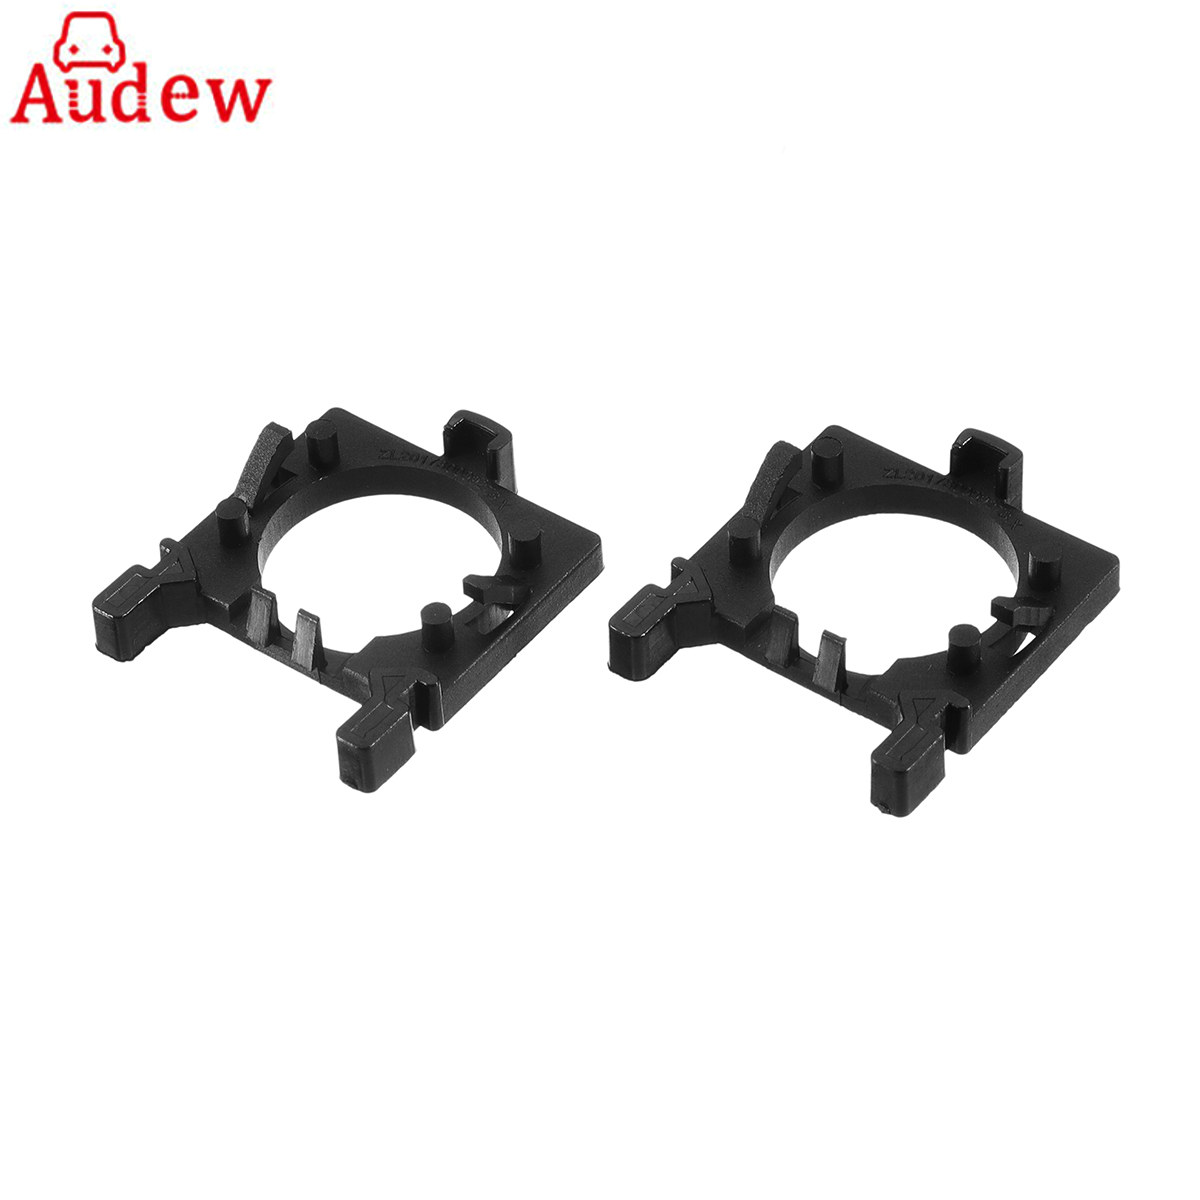 2pcs Auto LED Headlight H7 Bulbs Installation Adapter Holder Car Light Socket For Ford for Focus 3 / for Fiesta for Mondeo